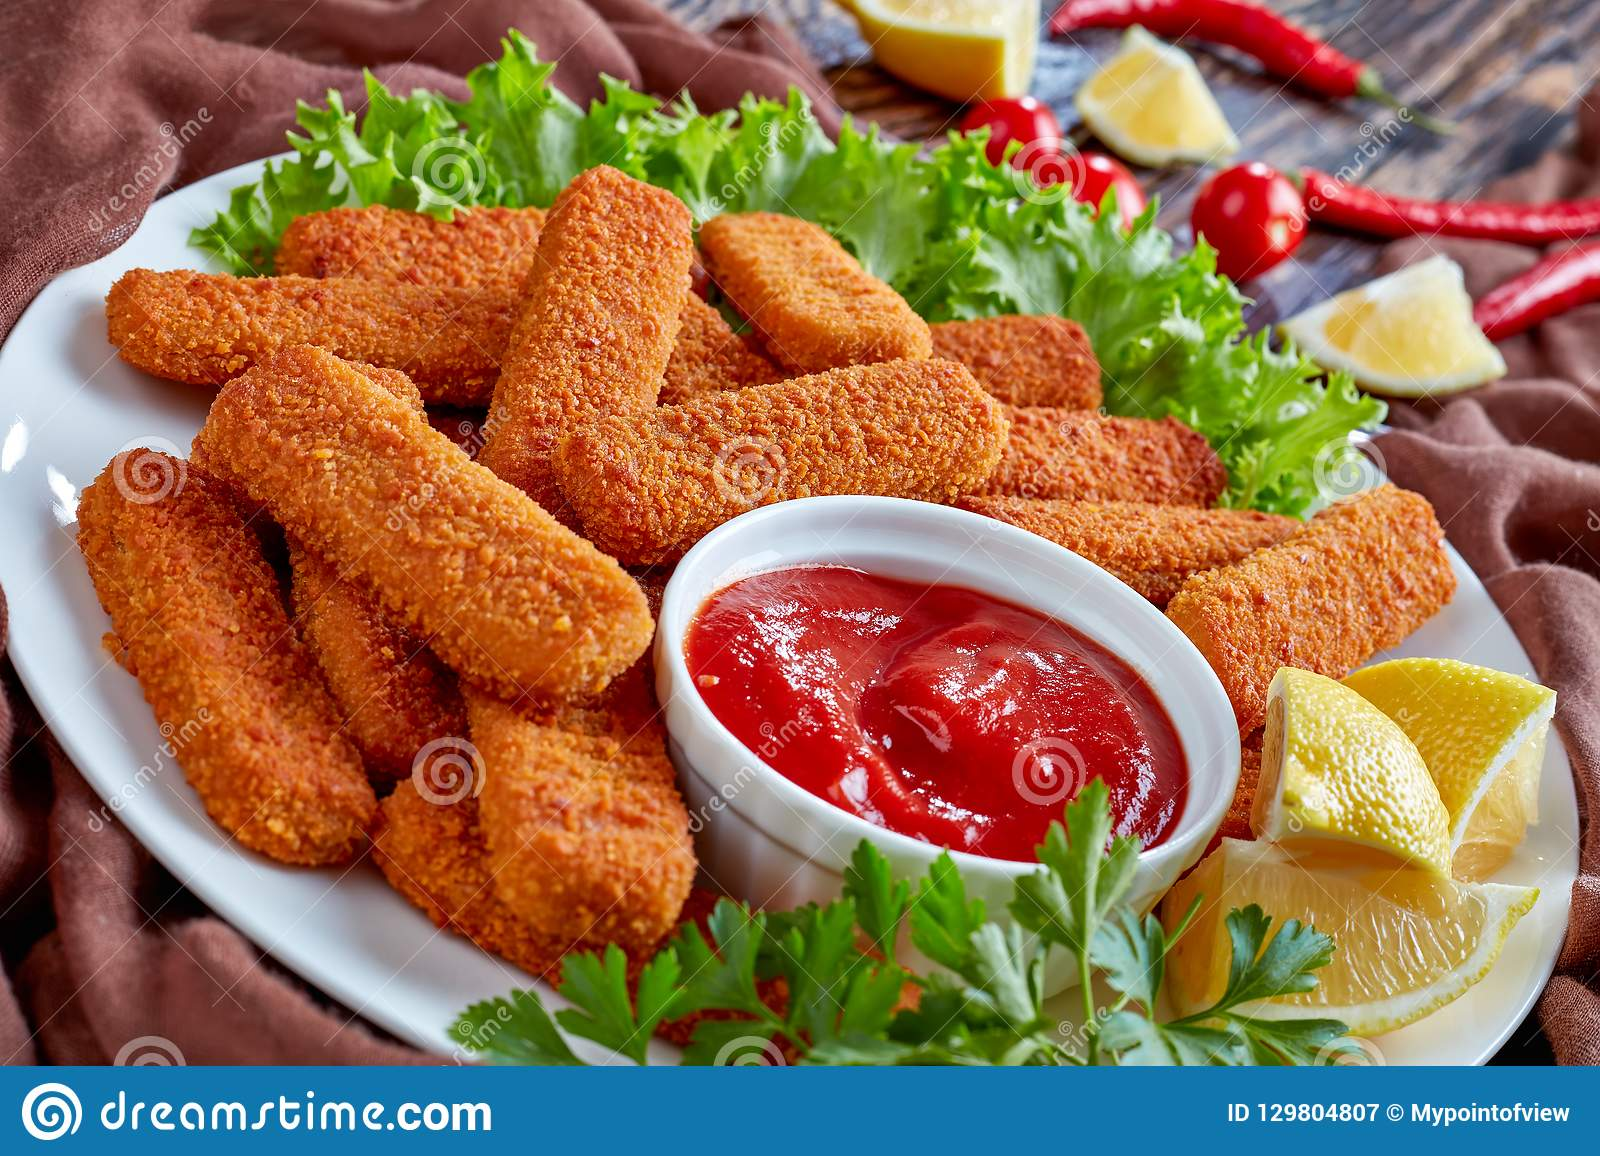 Crumbed fish sticks served with ketchup